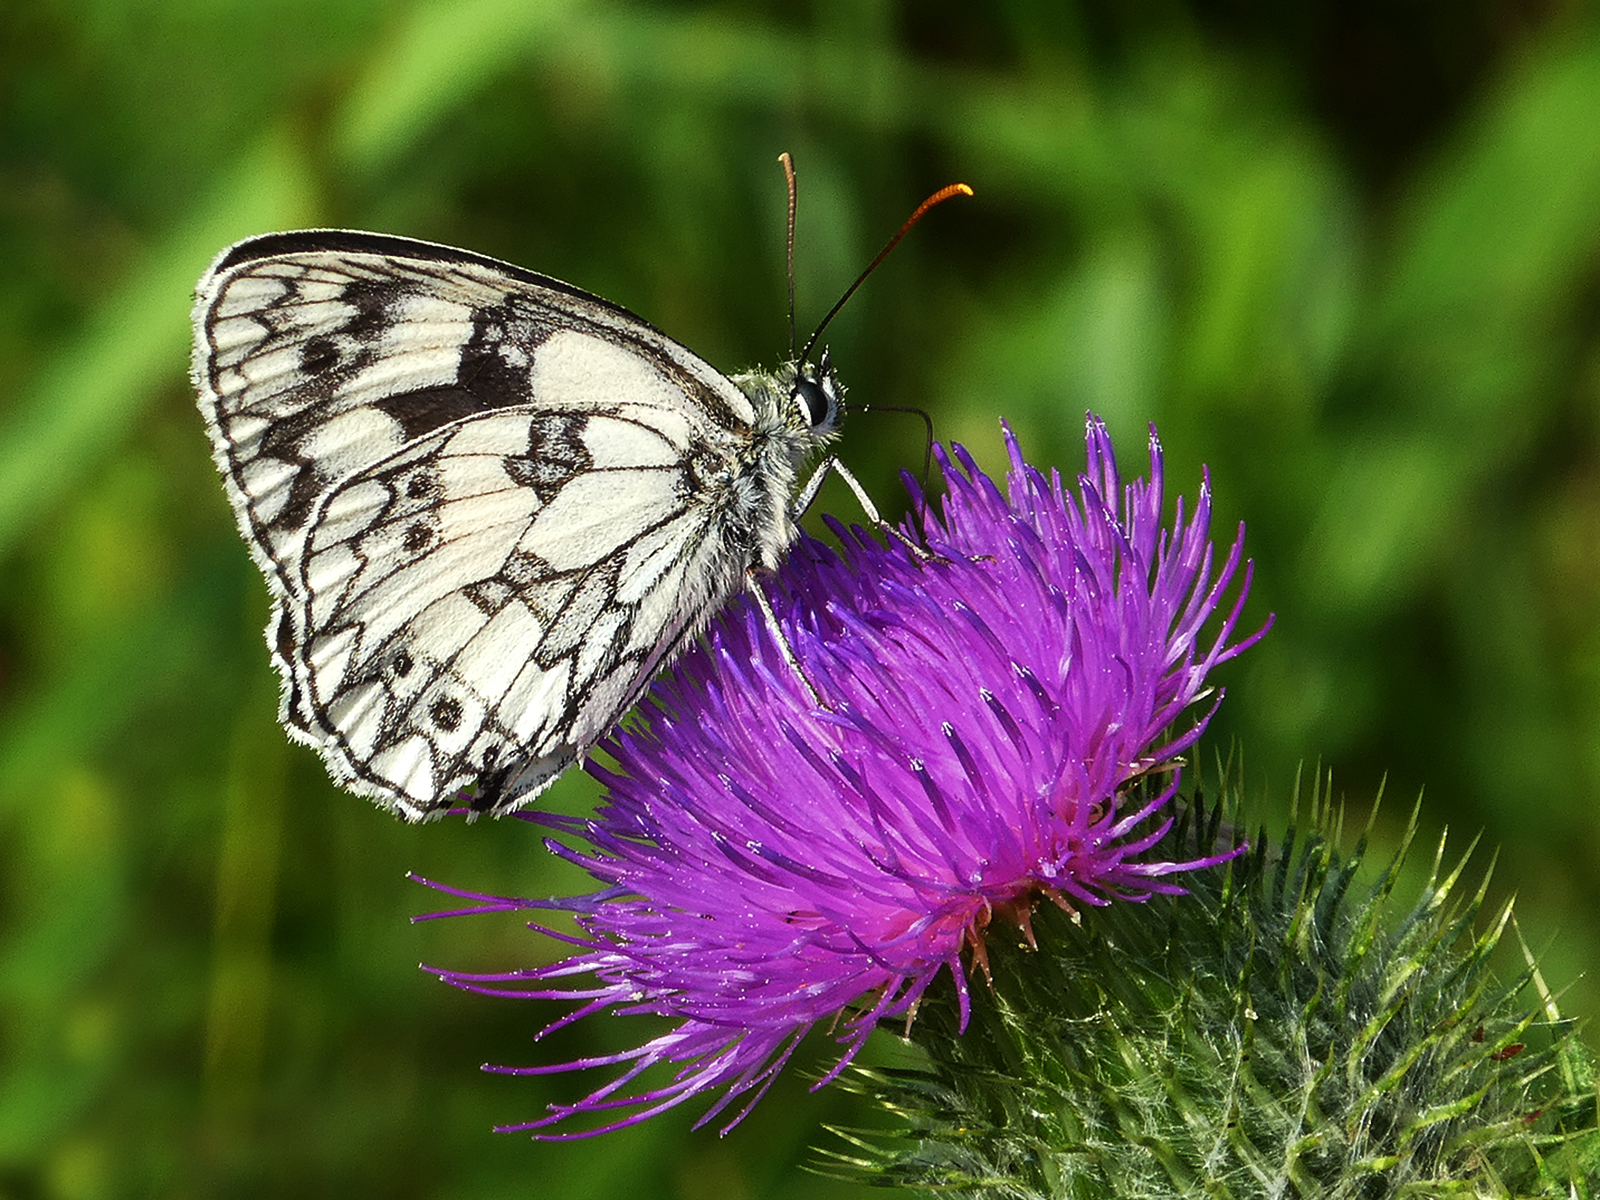 'Marble White on a Thistle' by Richard Temlett